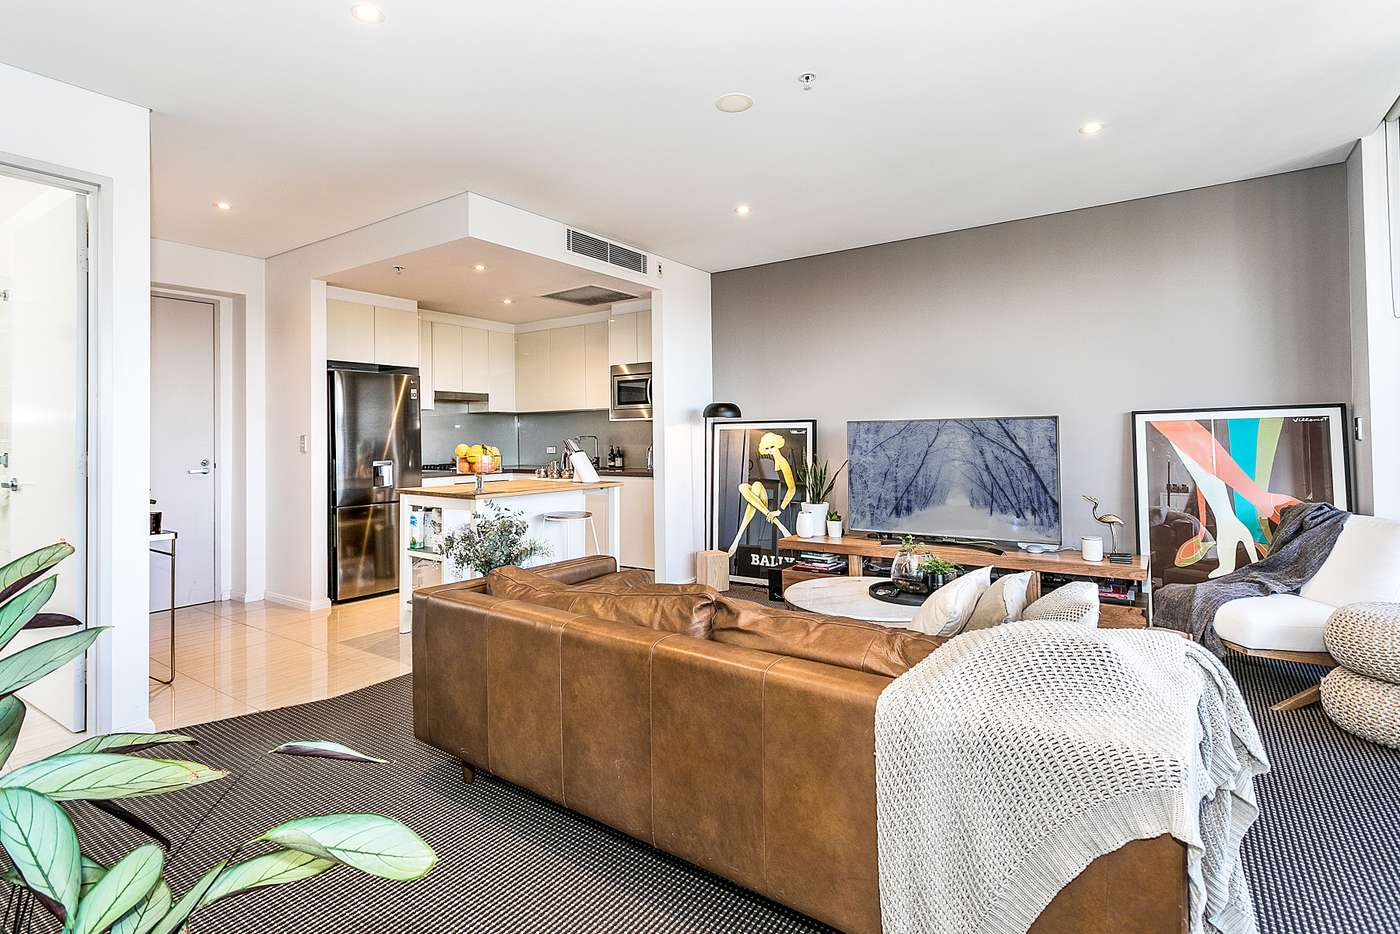 Main view of Homely apartment listing, 616/20 Gadigal Avenue, Zetland NSW 2017